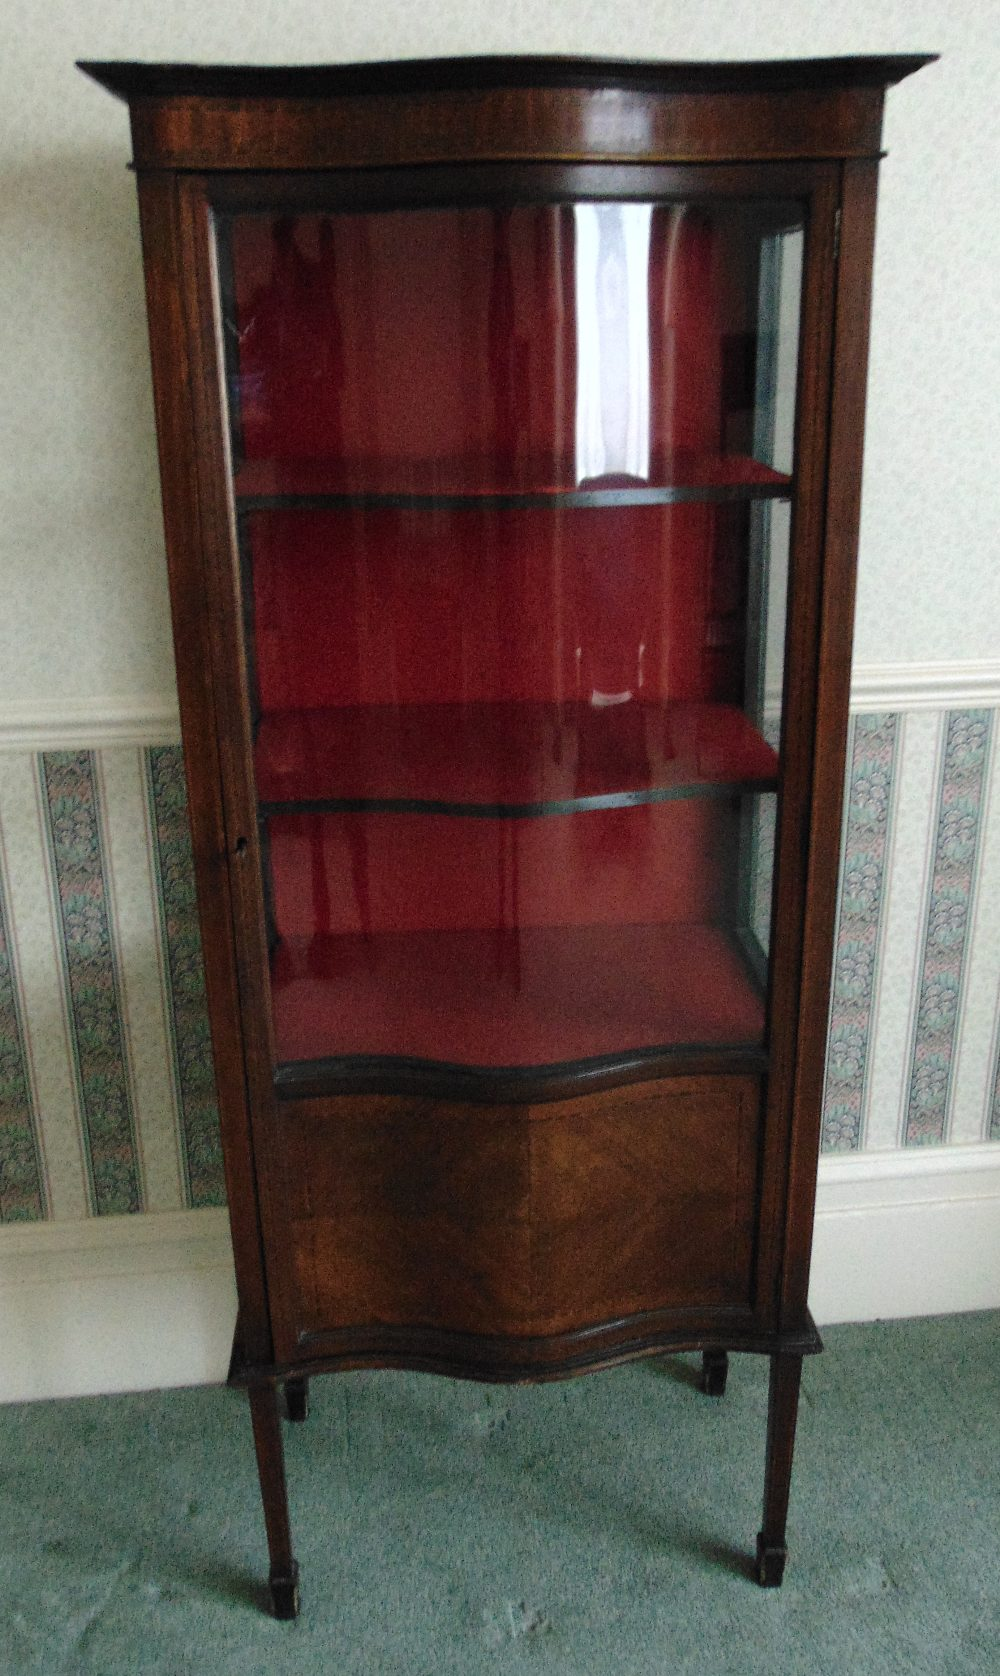 An Edwardian mahogany glazed display cabinet with bow fronted hinged glass door and satinwood inlays